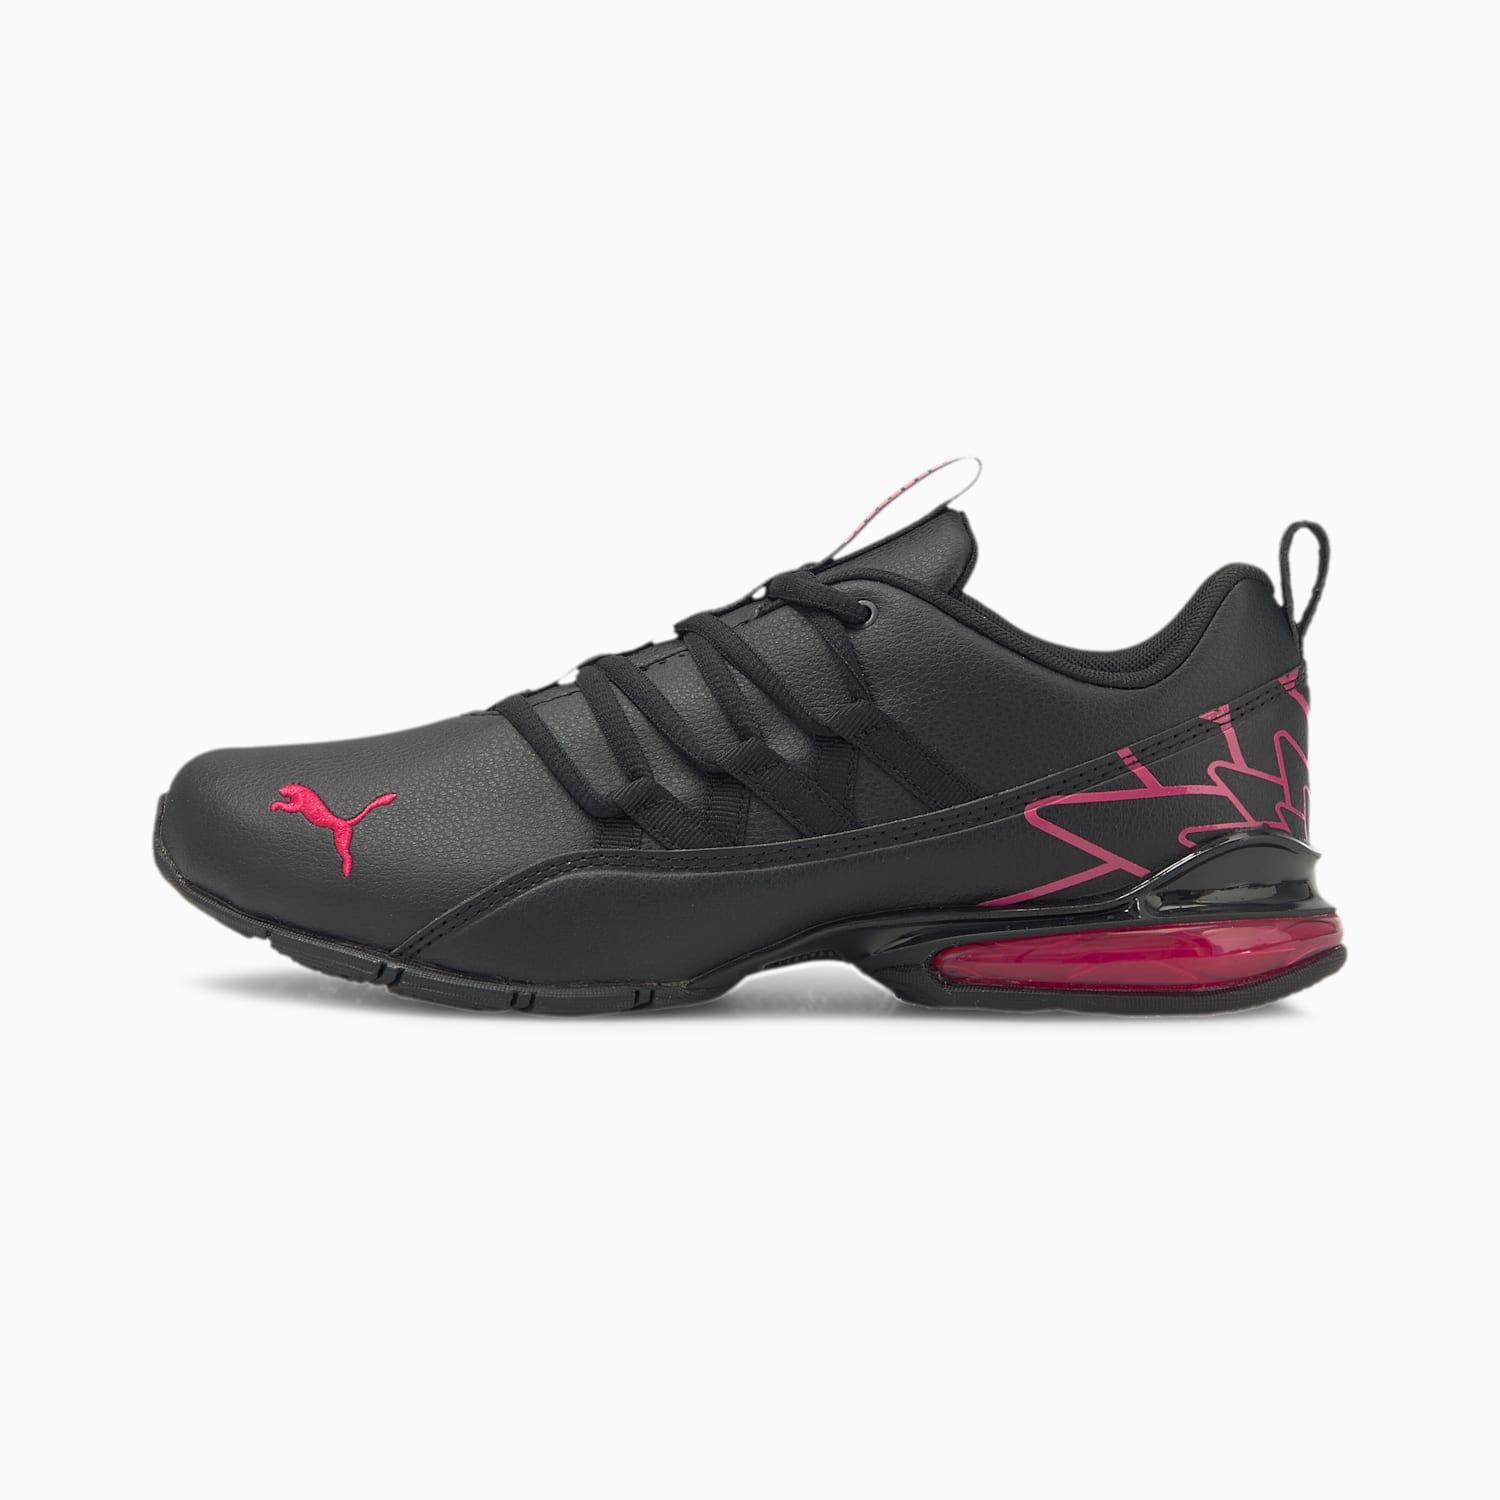 Puma Riaze Prowl Graphic Women's Training Shoes